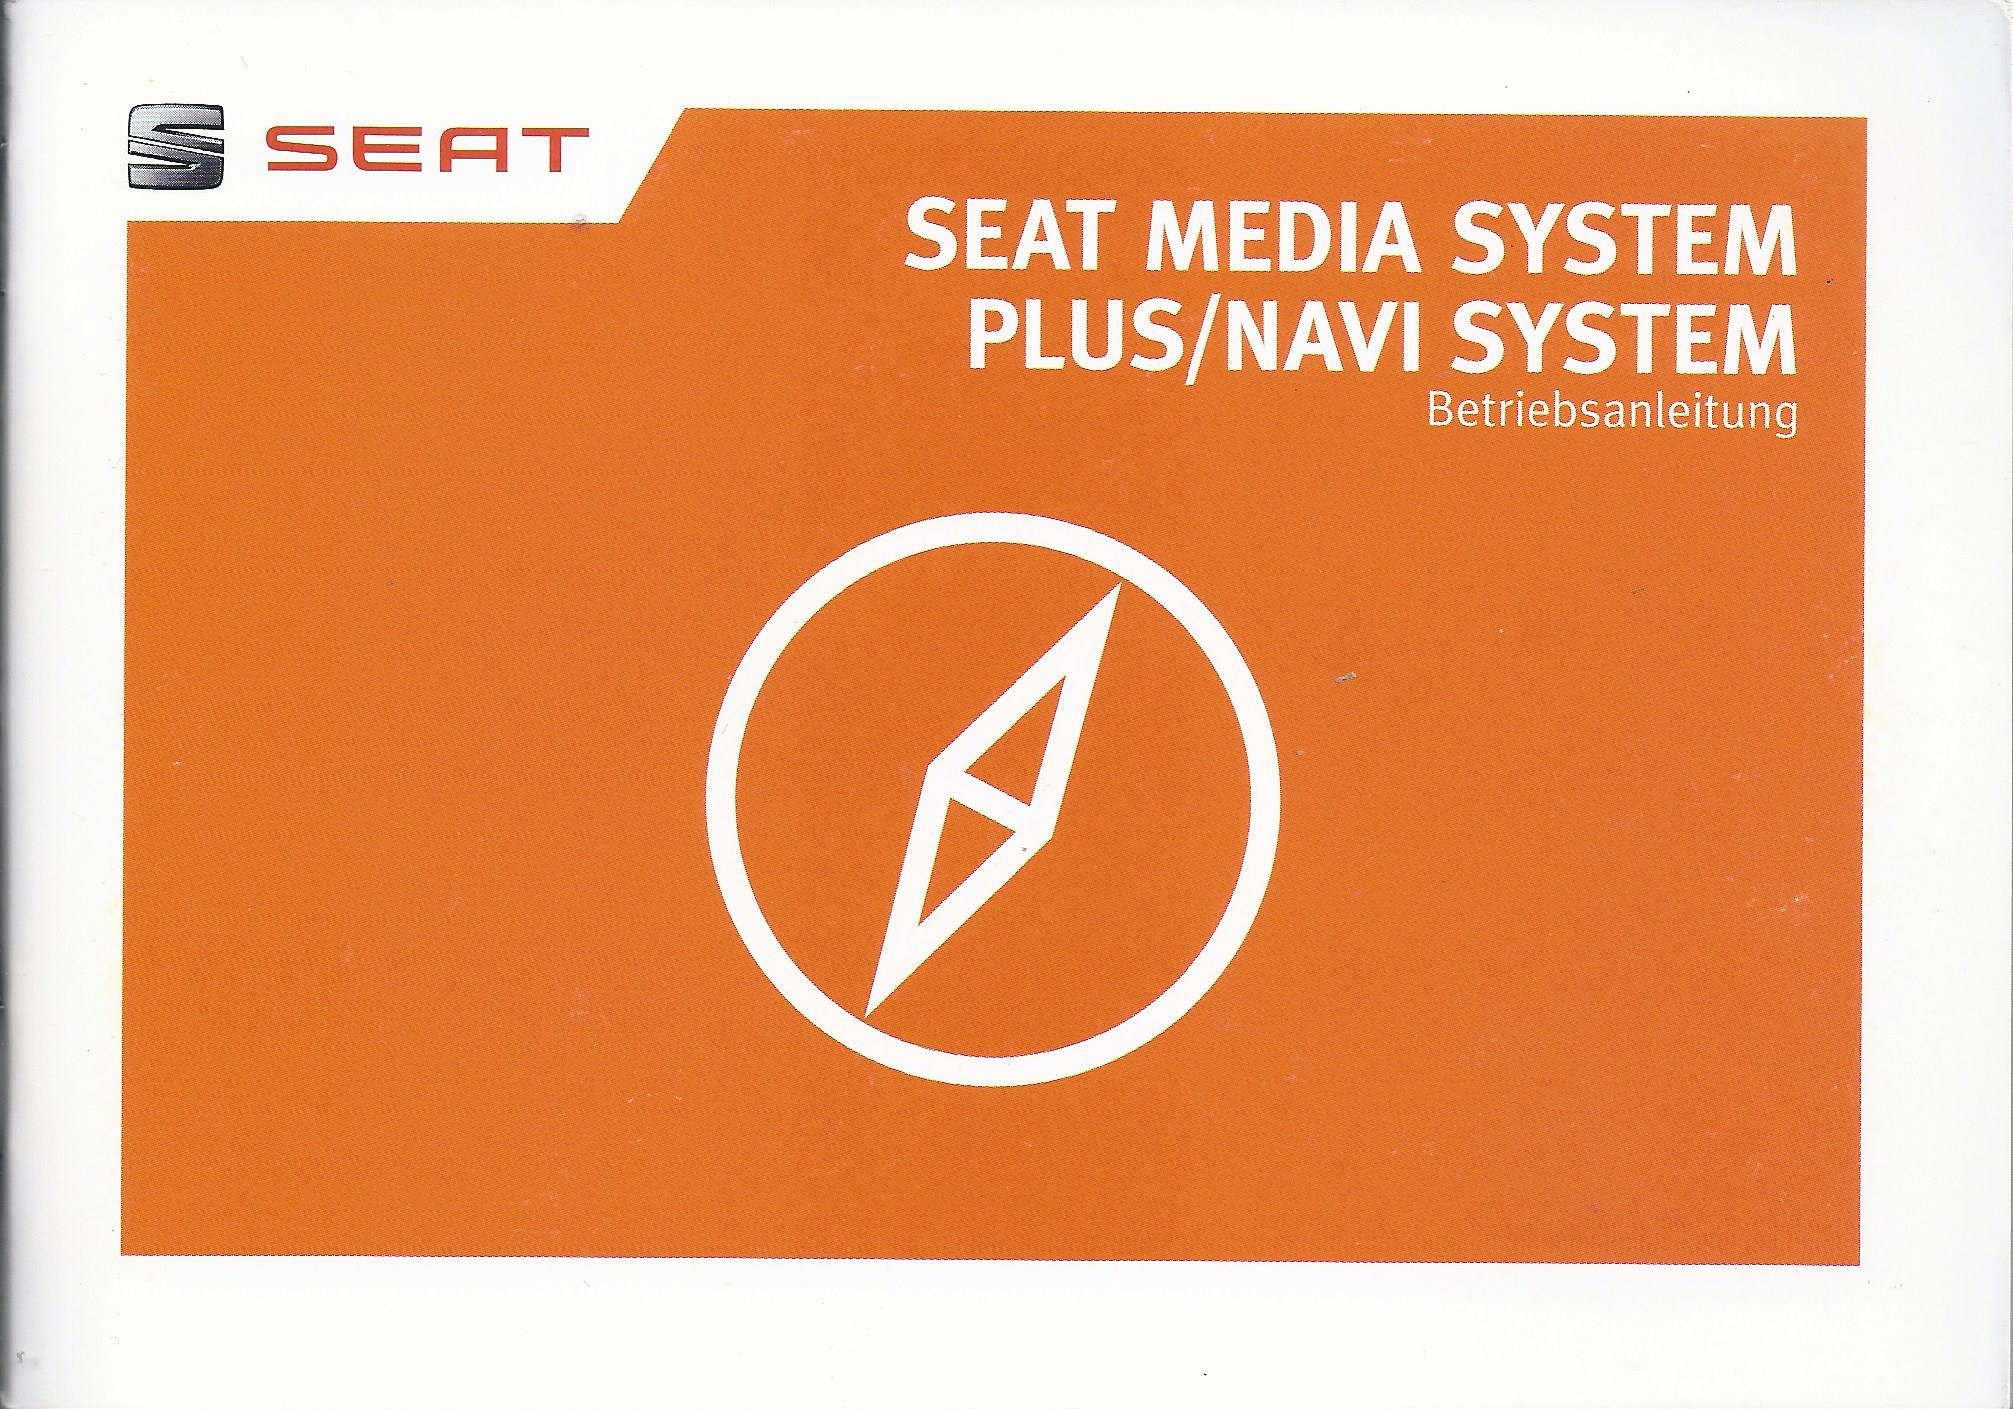 seat media system plus navi system 2015 bedienungsanleitung handbuch rn ebay. Black Bedroom Furniture Sets. Home Design Ideas